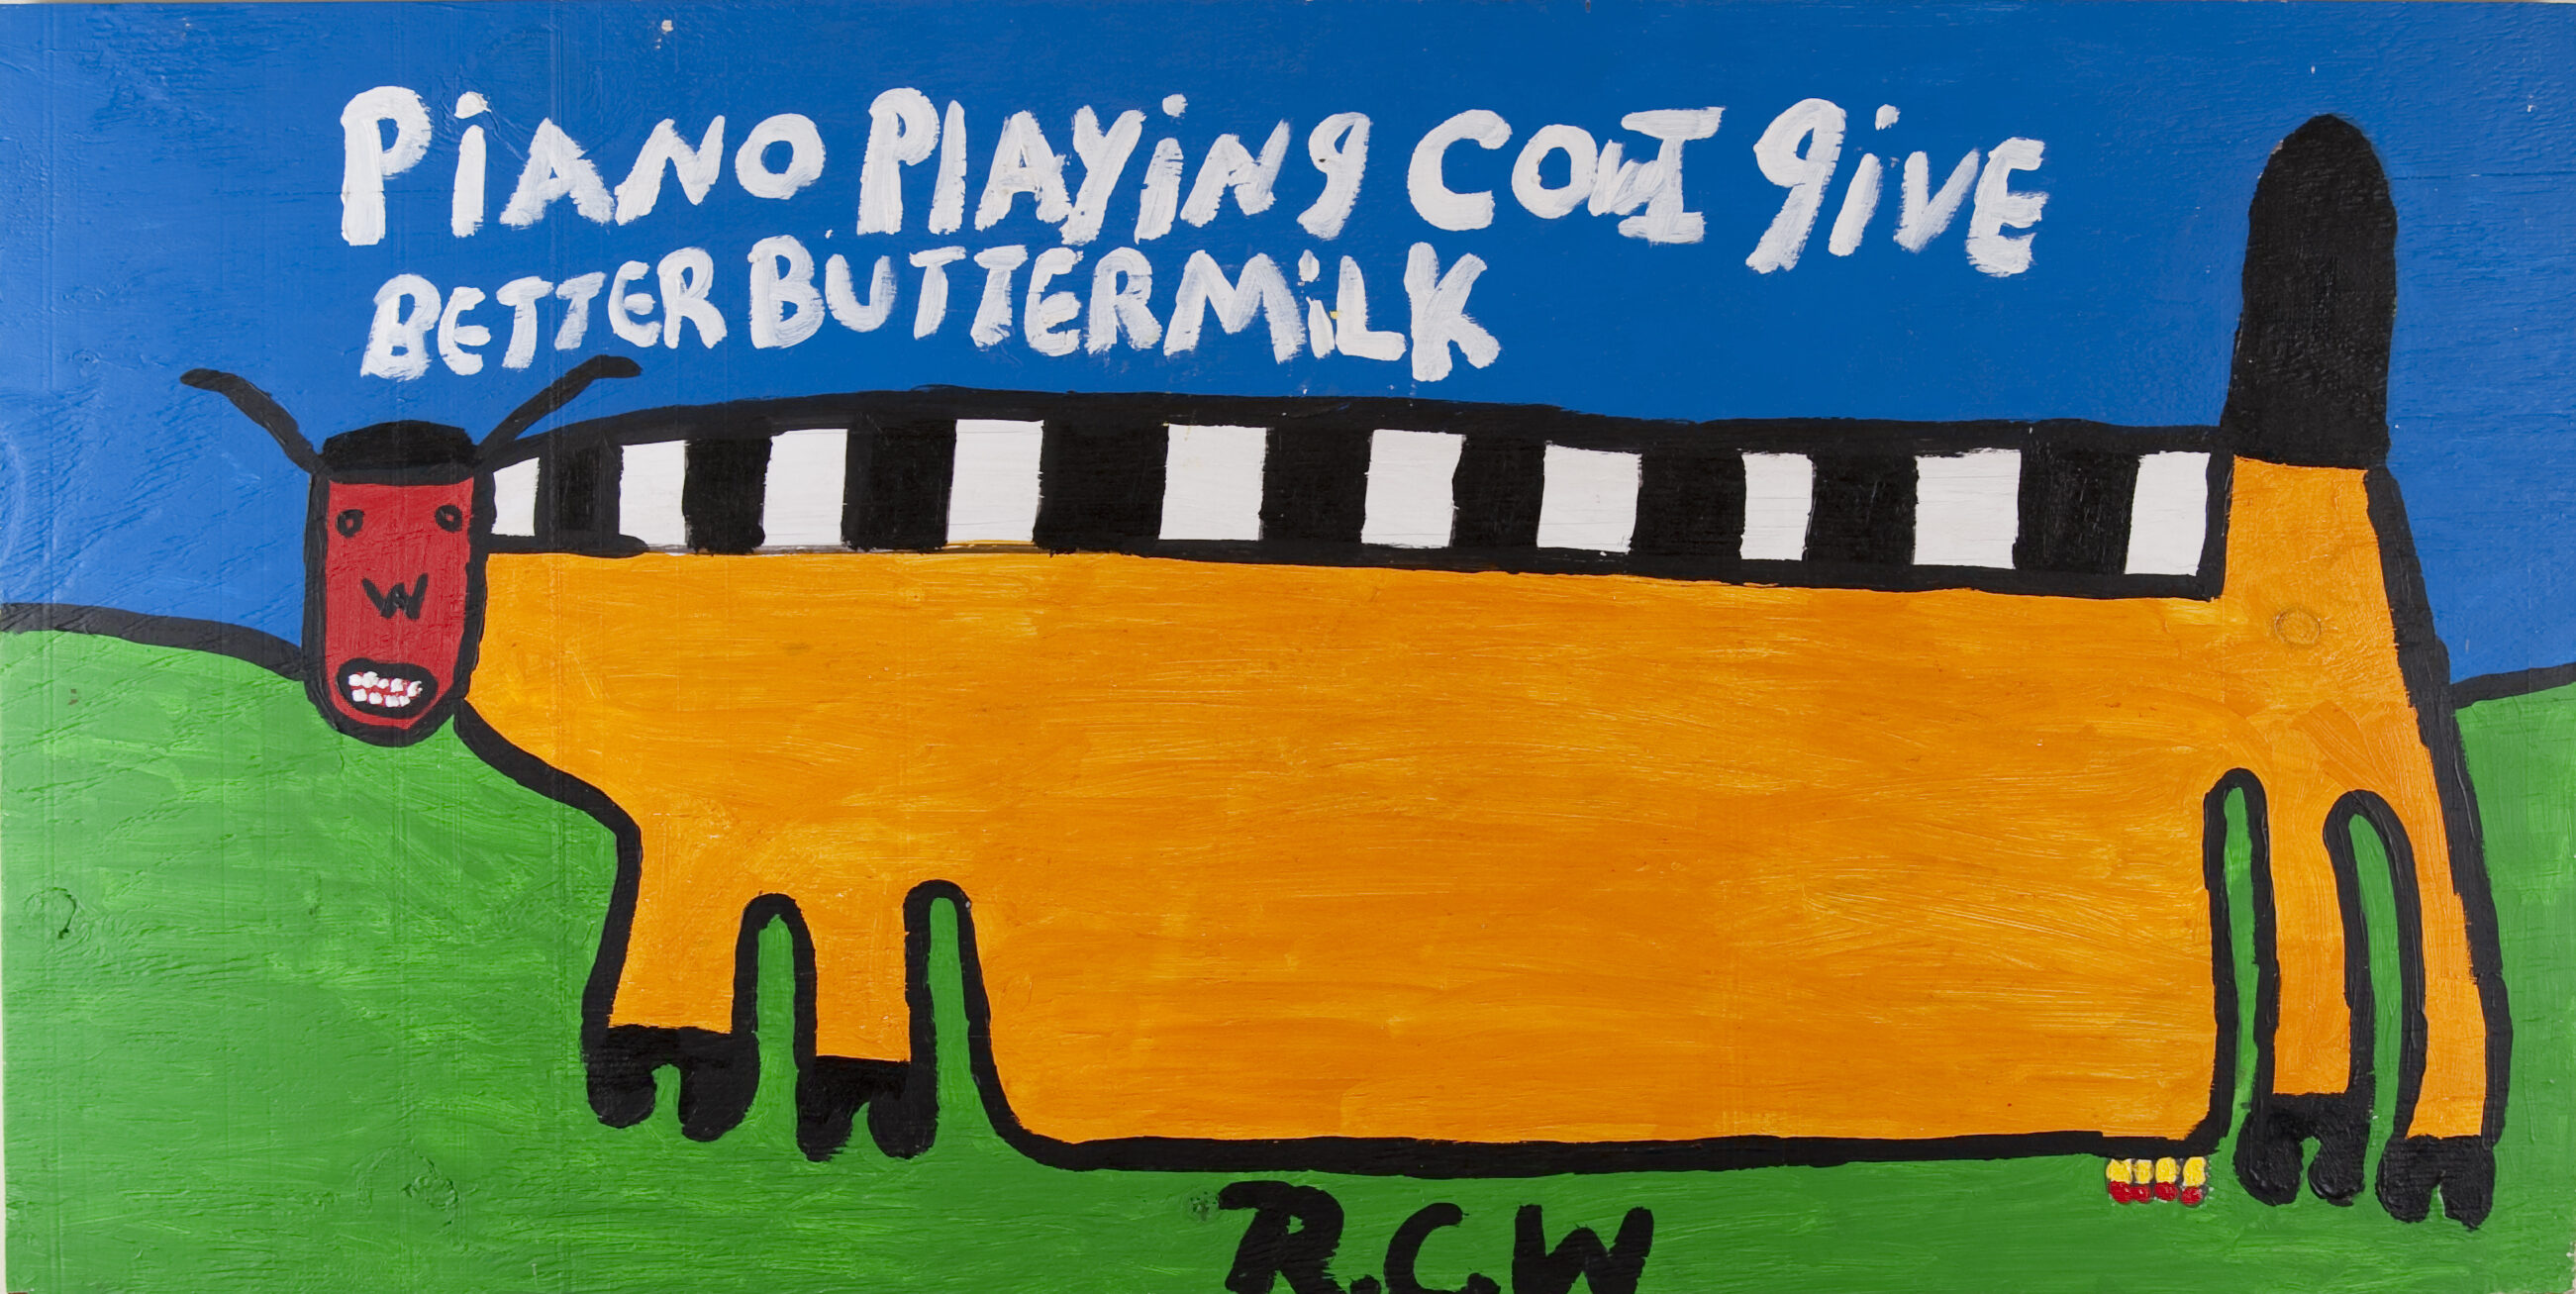 A four-legged, cow-like, rectangular creature stands on a green field, above the initials R.C.W. It has a black and white striped back, golden body, black tail, red humanoid face, black hooves, and udder. It is under a blue sky and the white words 'piano playing cow I give better buttermilk.'